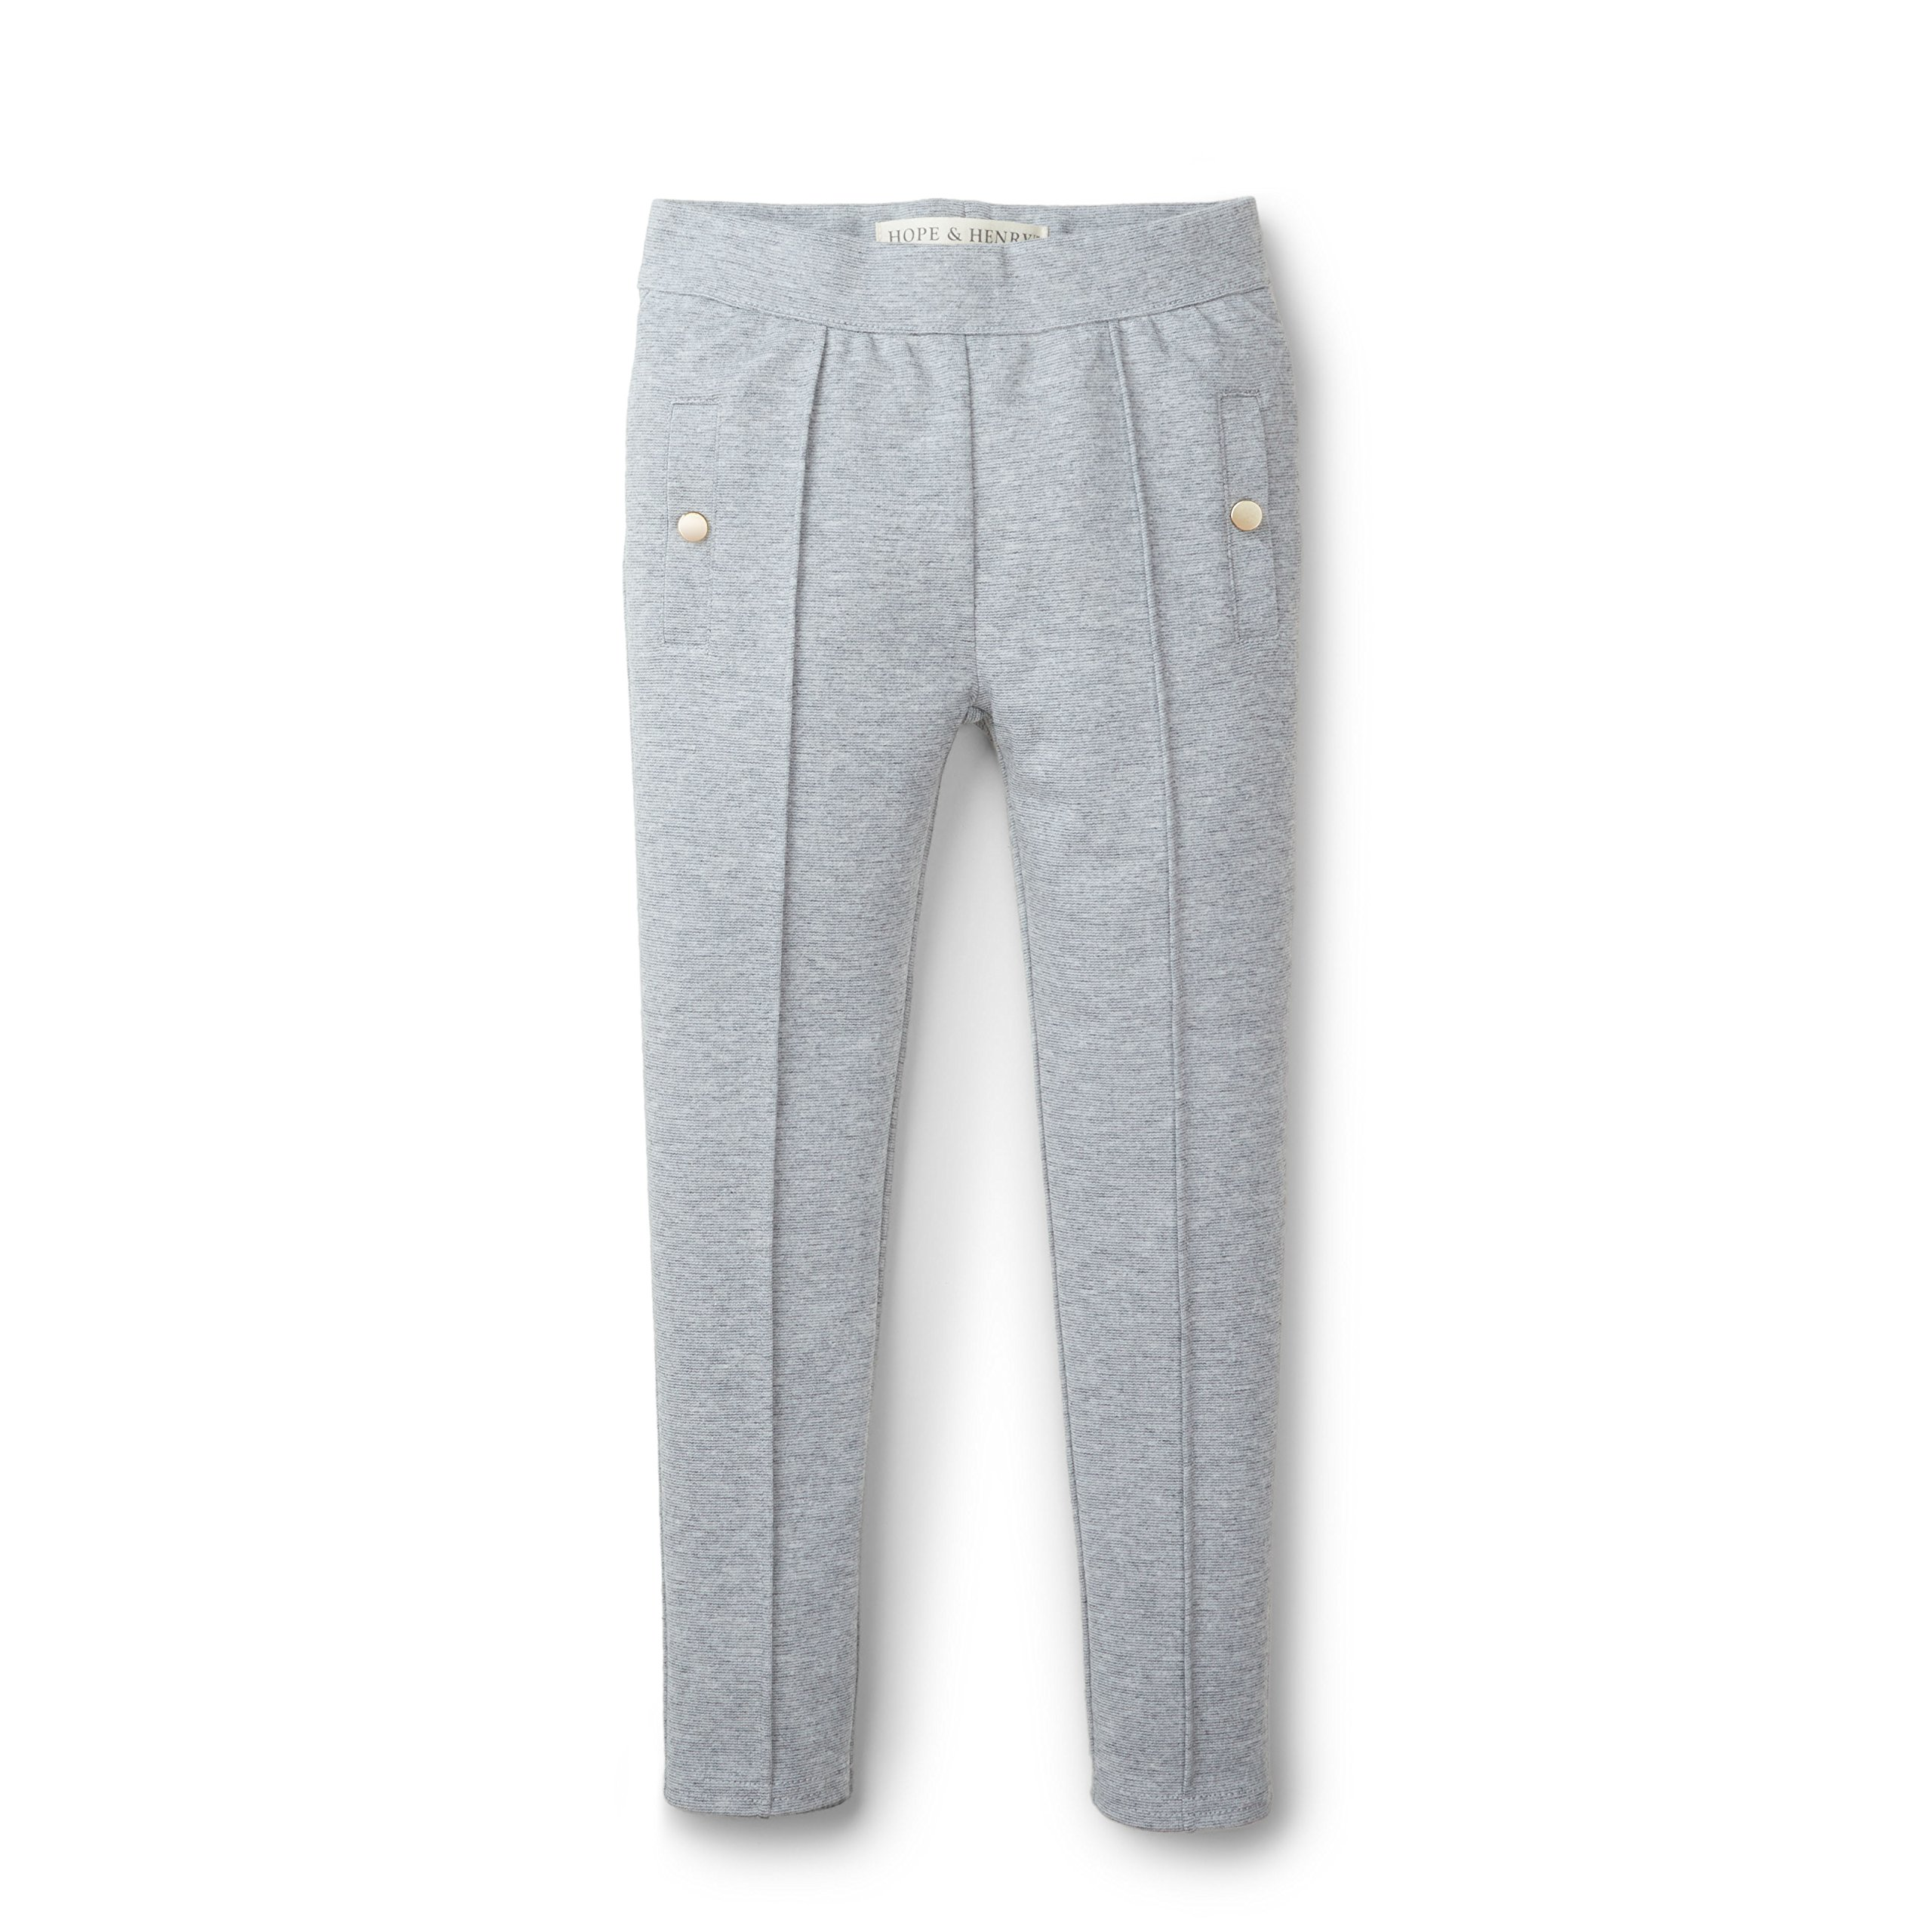 Hope & Henry Girls' Grey Pintuck Ponte Pant Made with Organic Cotton Size 10